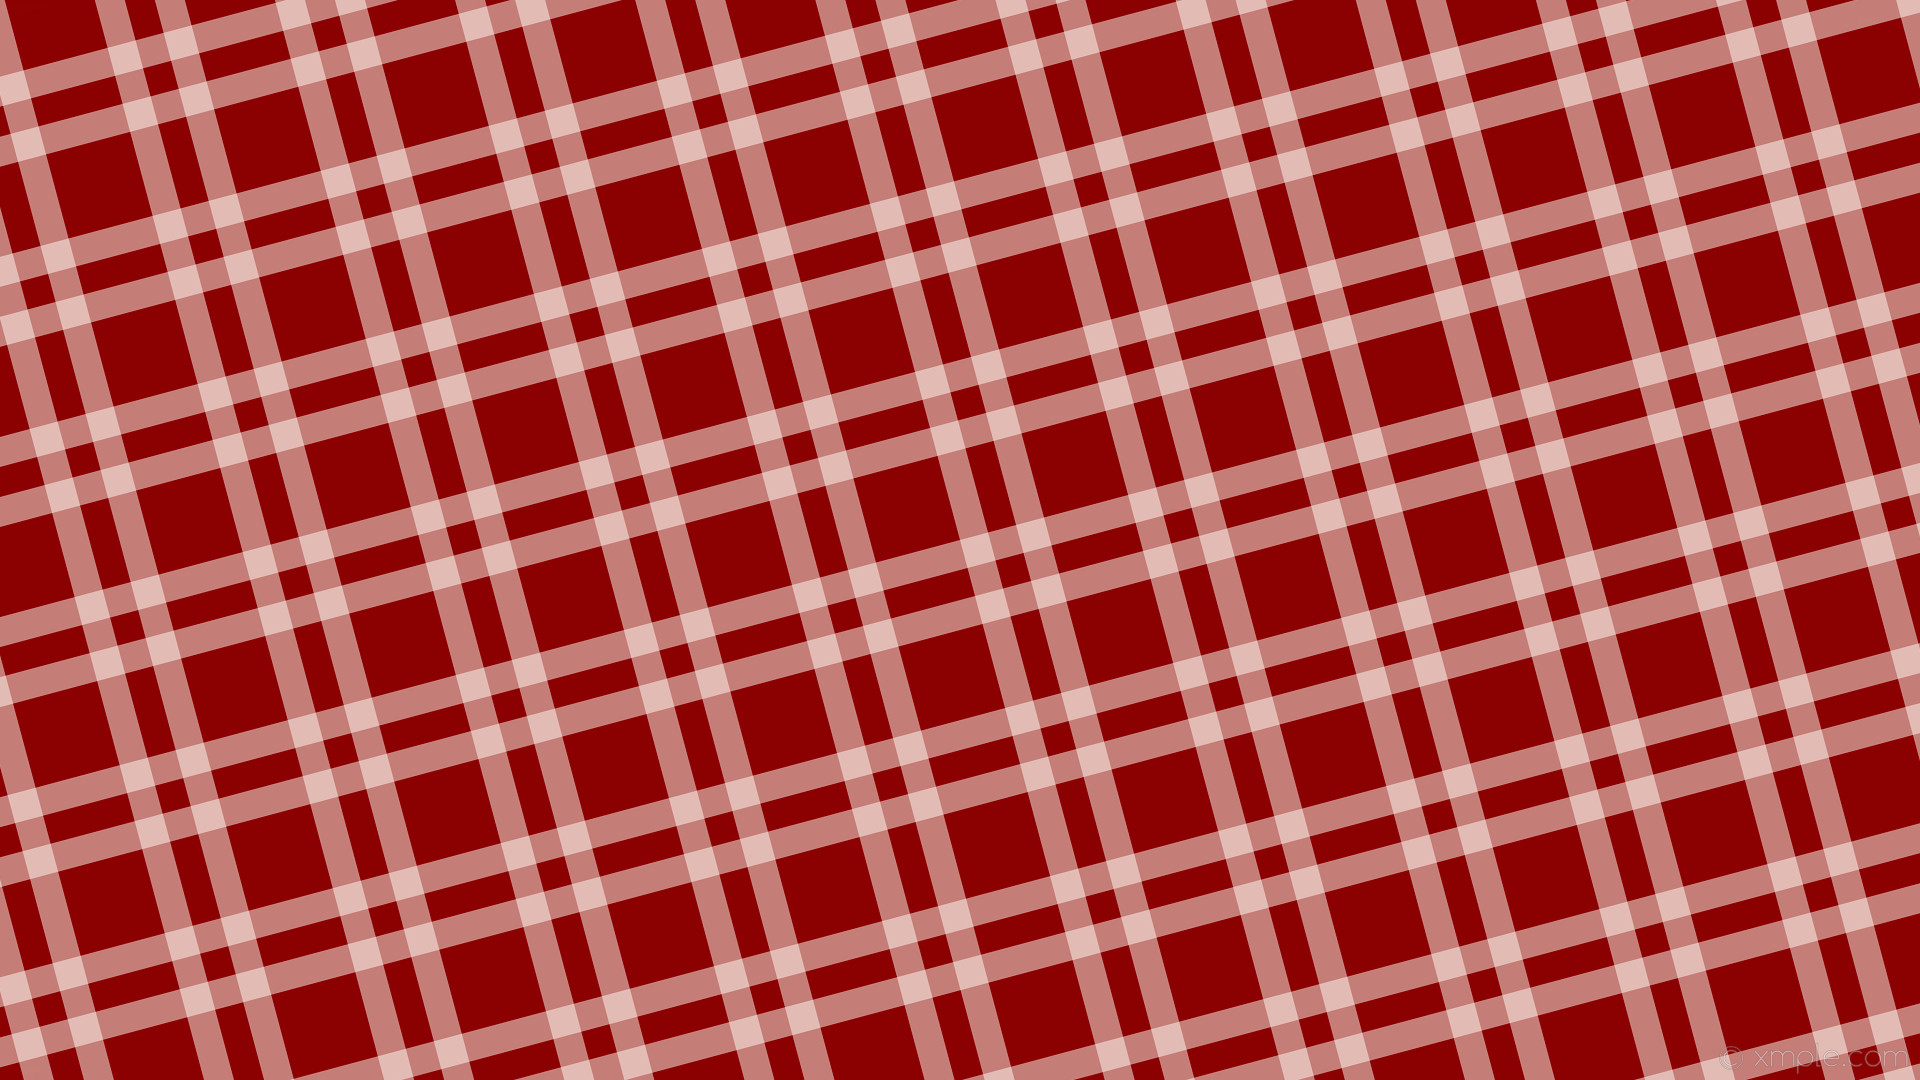 1920x1080 wallpaper striped gingham red white dual dark red floral white #8b0000  #fffaf0 15°